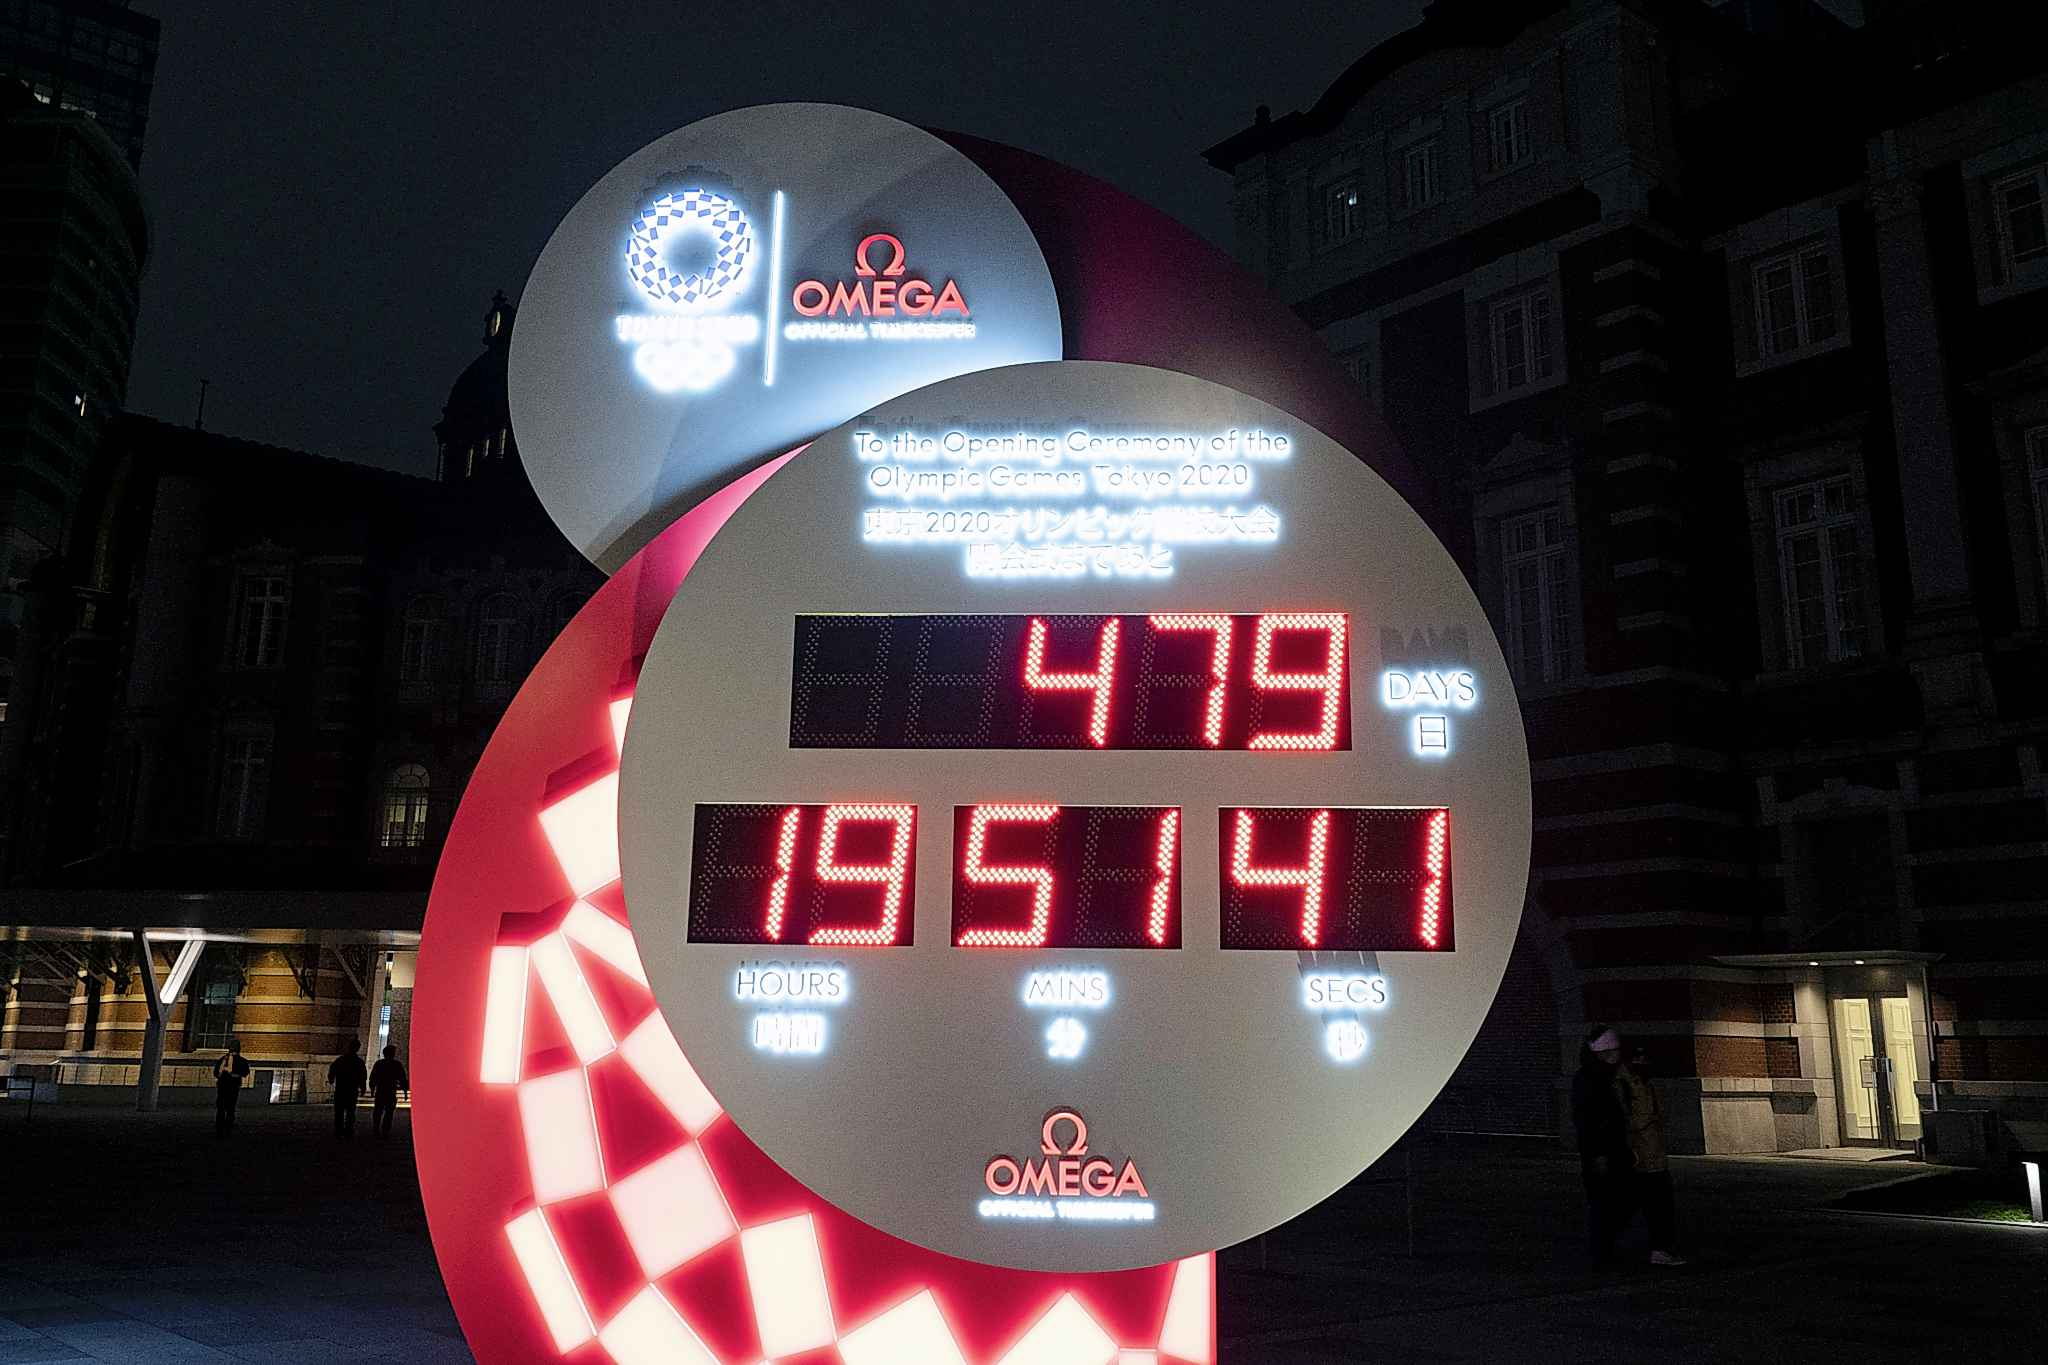 A countdown clock displays the remaining days until the new start date for the Tokyo 2020 Olympics Tuesday. The Tokyo Olympics will open next year in the same time slot scheduled for this year's games. (Jae C. Hong / The Associated Press)